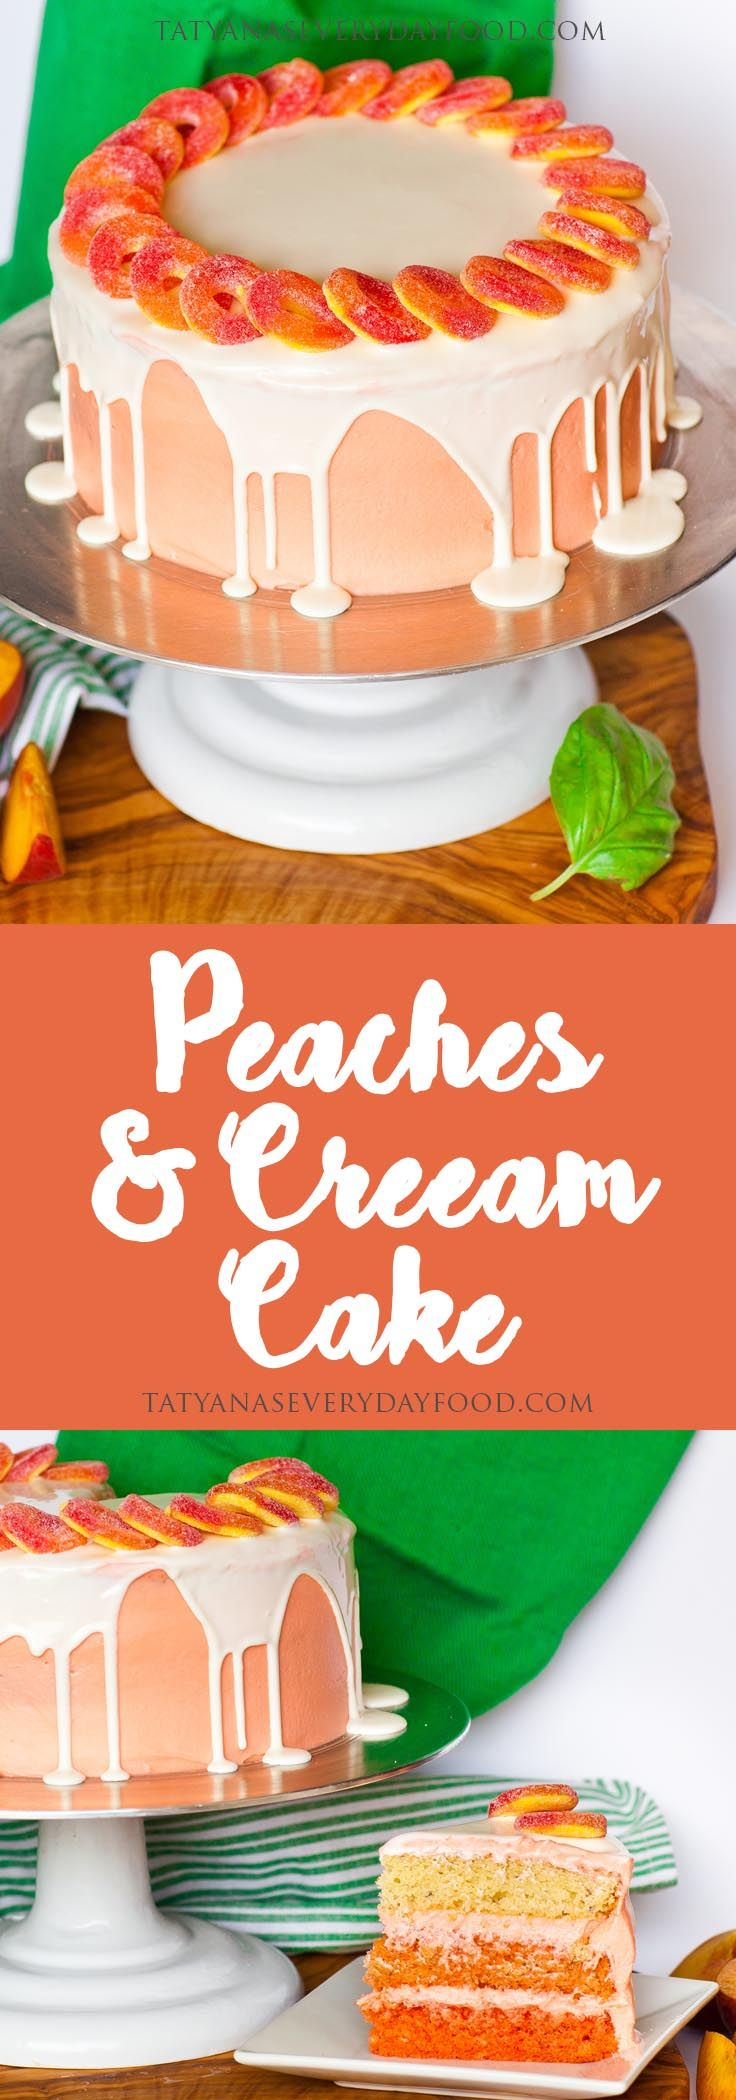 Peaches are the essence of summer and my 'Peaches and Cream Cake' is loaded with peachy-flavor! Not only is this cake gorgeous, it's delicious! This peach cake is loaded with peach flavor, frosted with a creamy cream cheese frosting and each layer is soaked with peach puree. And, cut it open to reveal an ombre […]